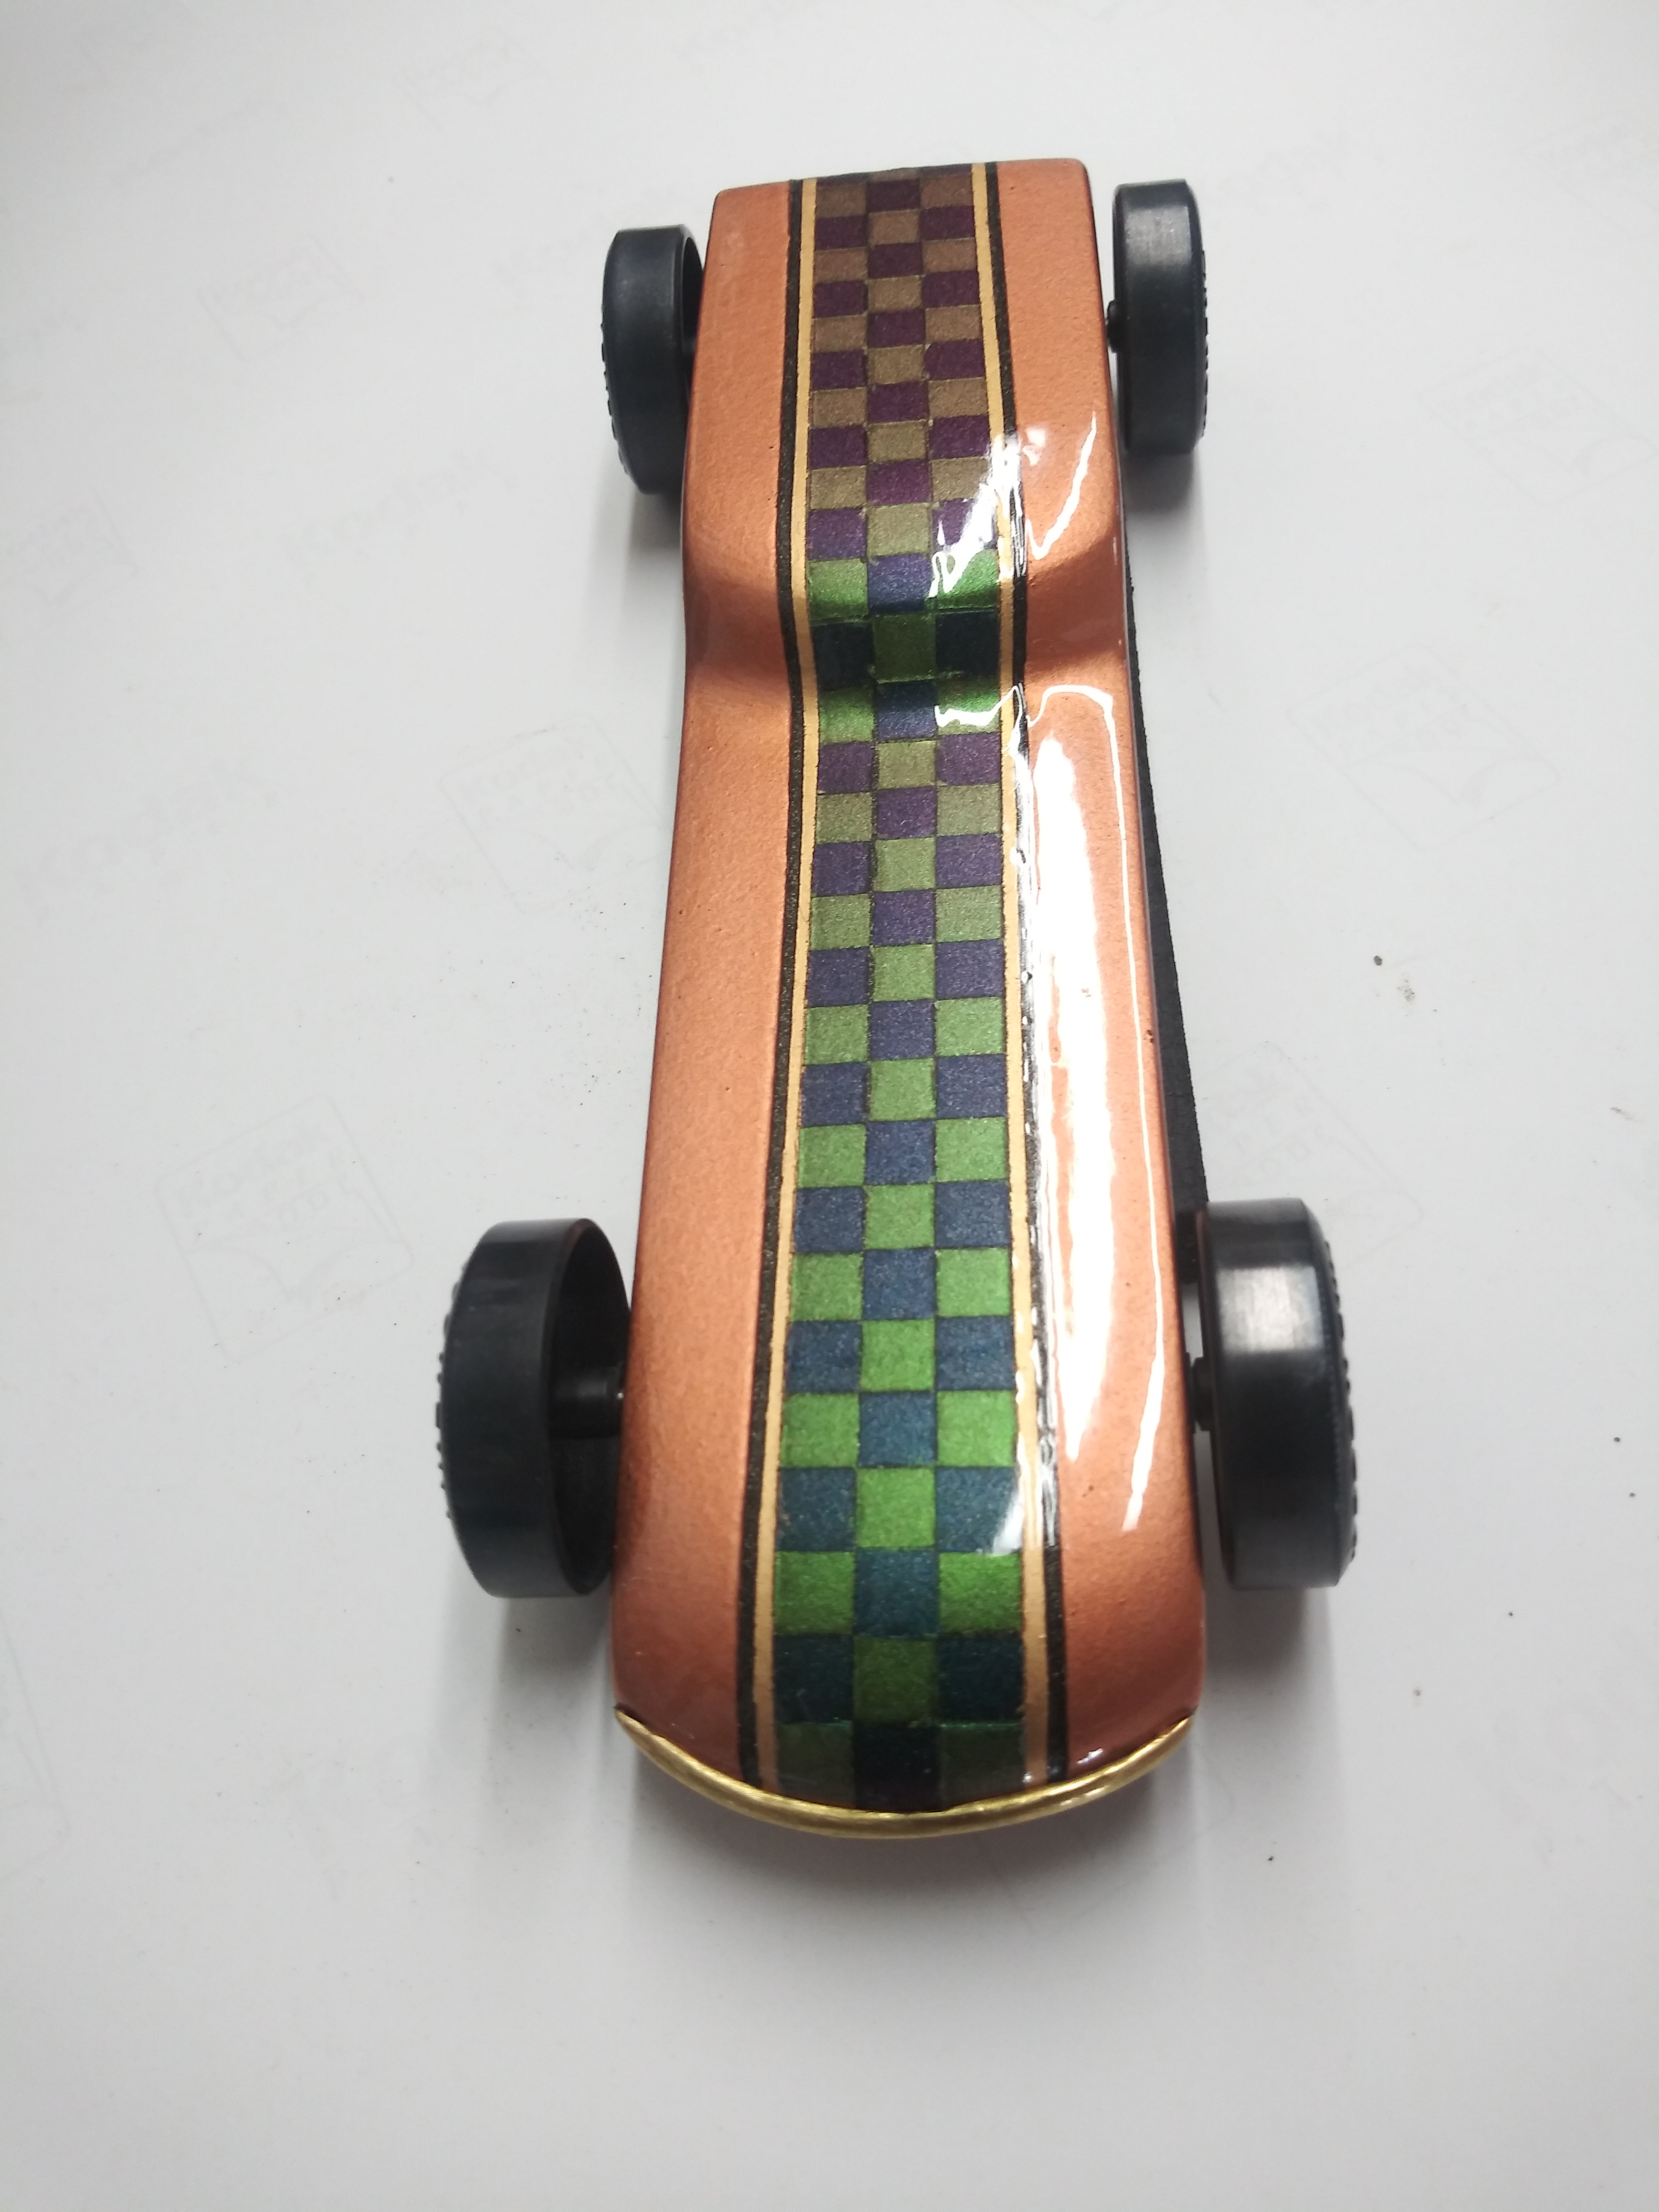 The Checkerboard Sled